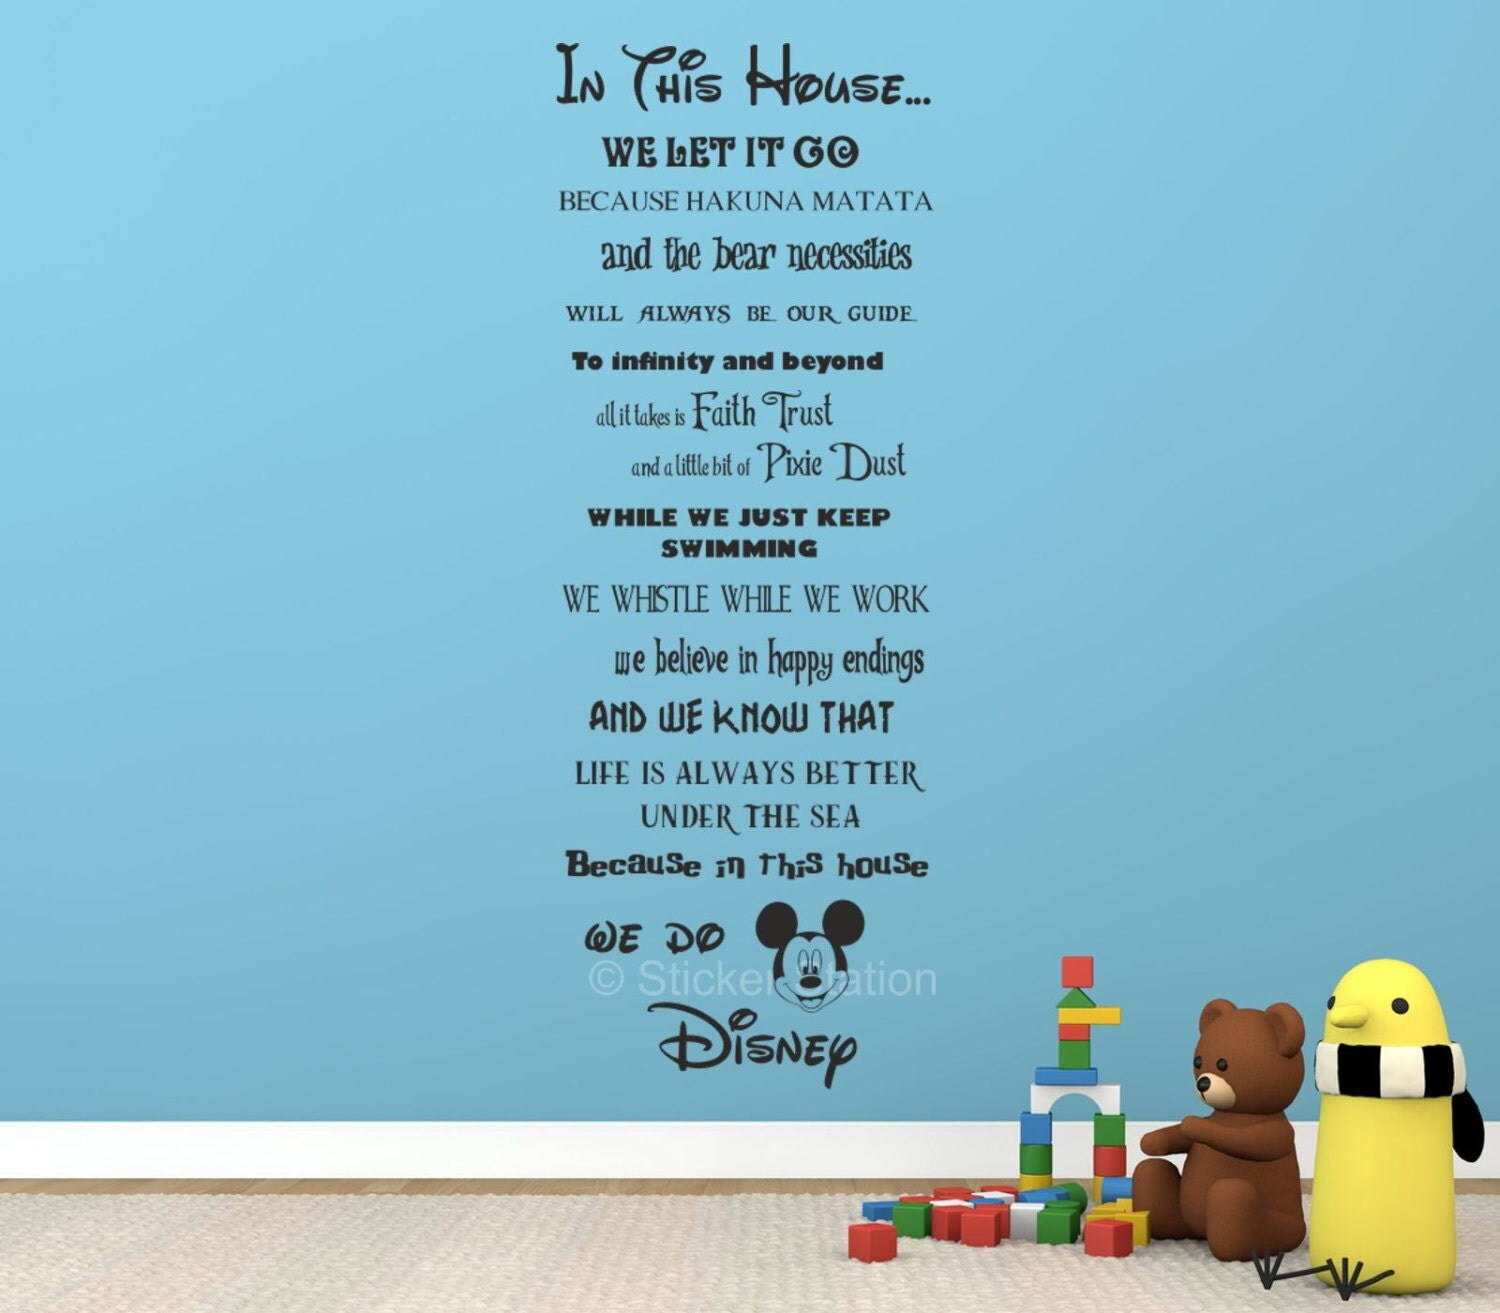 Wall Art Quotes Disney : In this house we do disney wall art quotes sticker